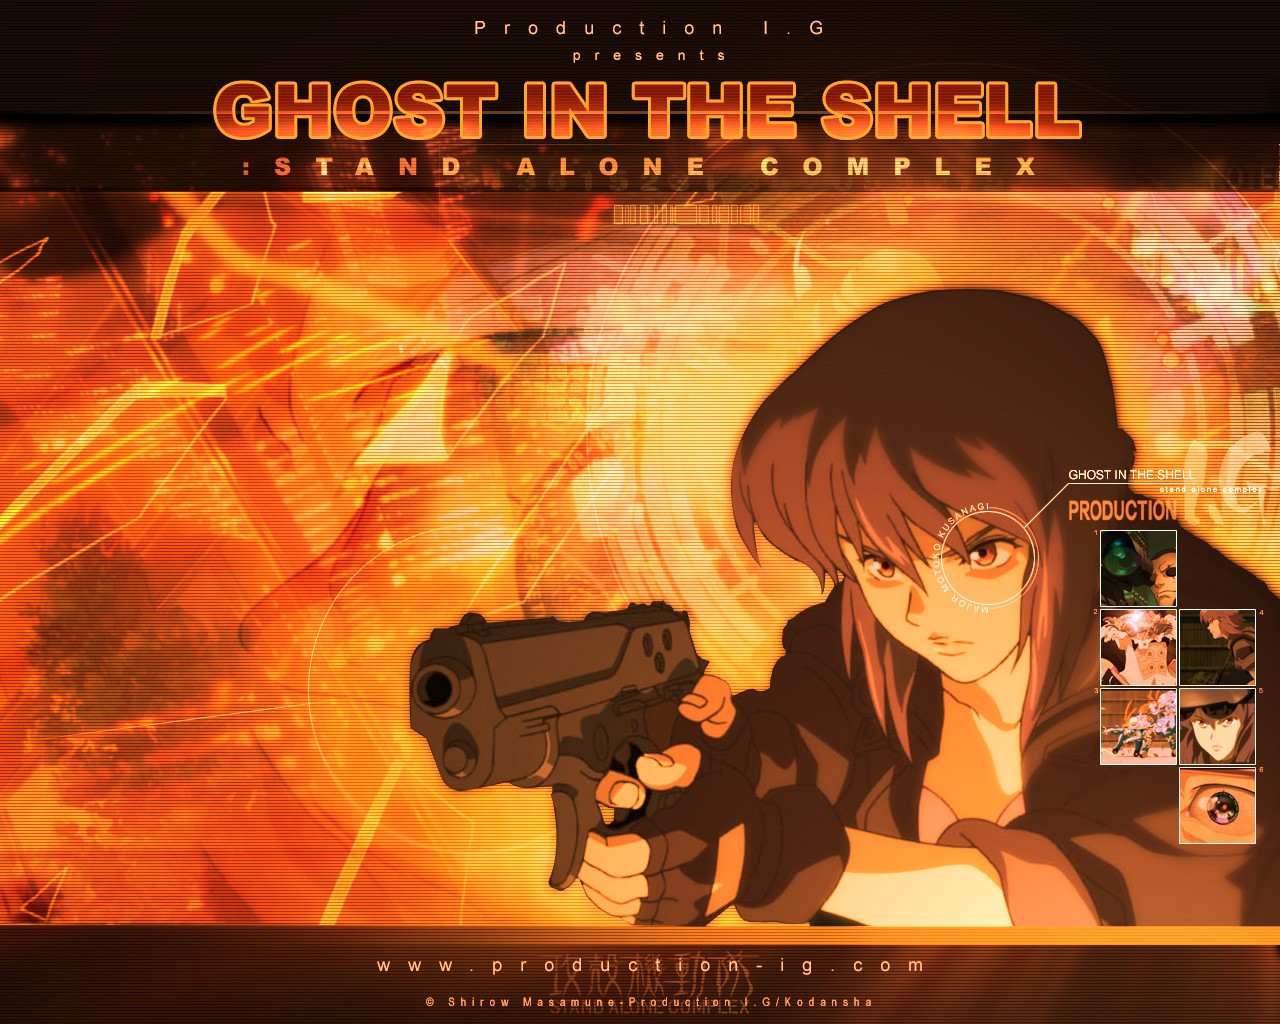 ghost in the shell kusanagi motoko призрак в доспехах